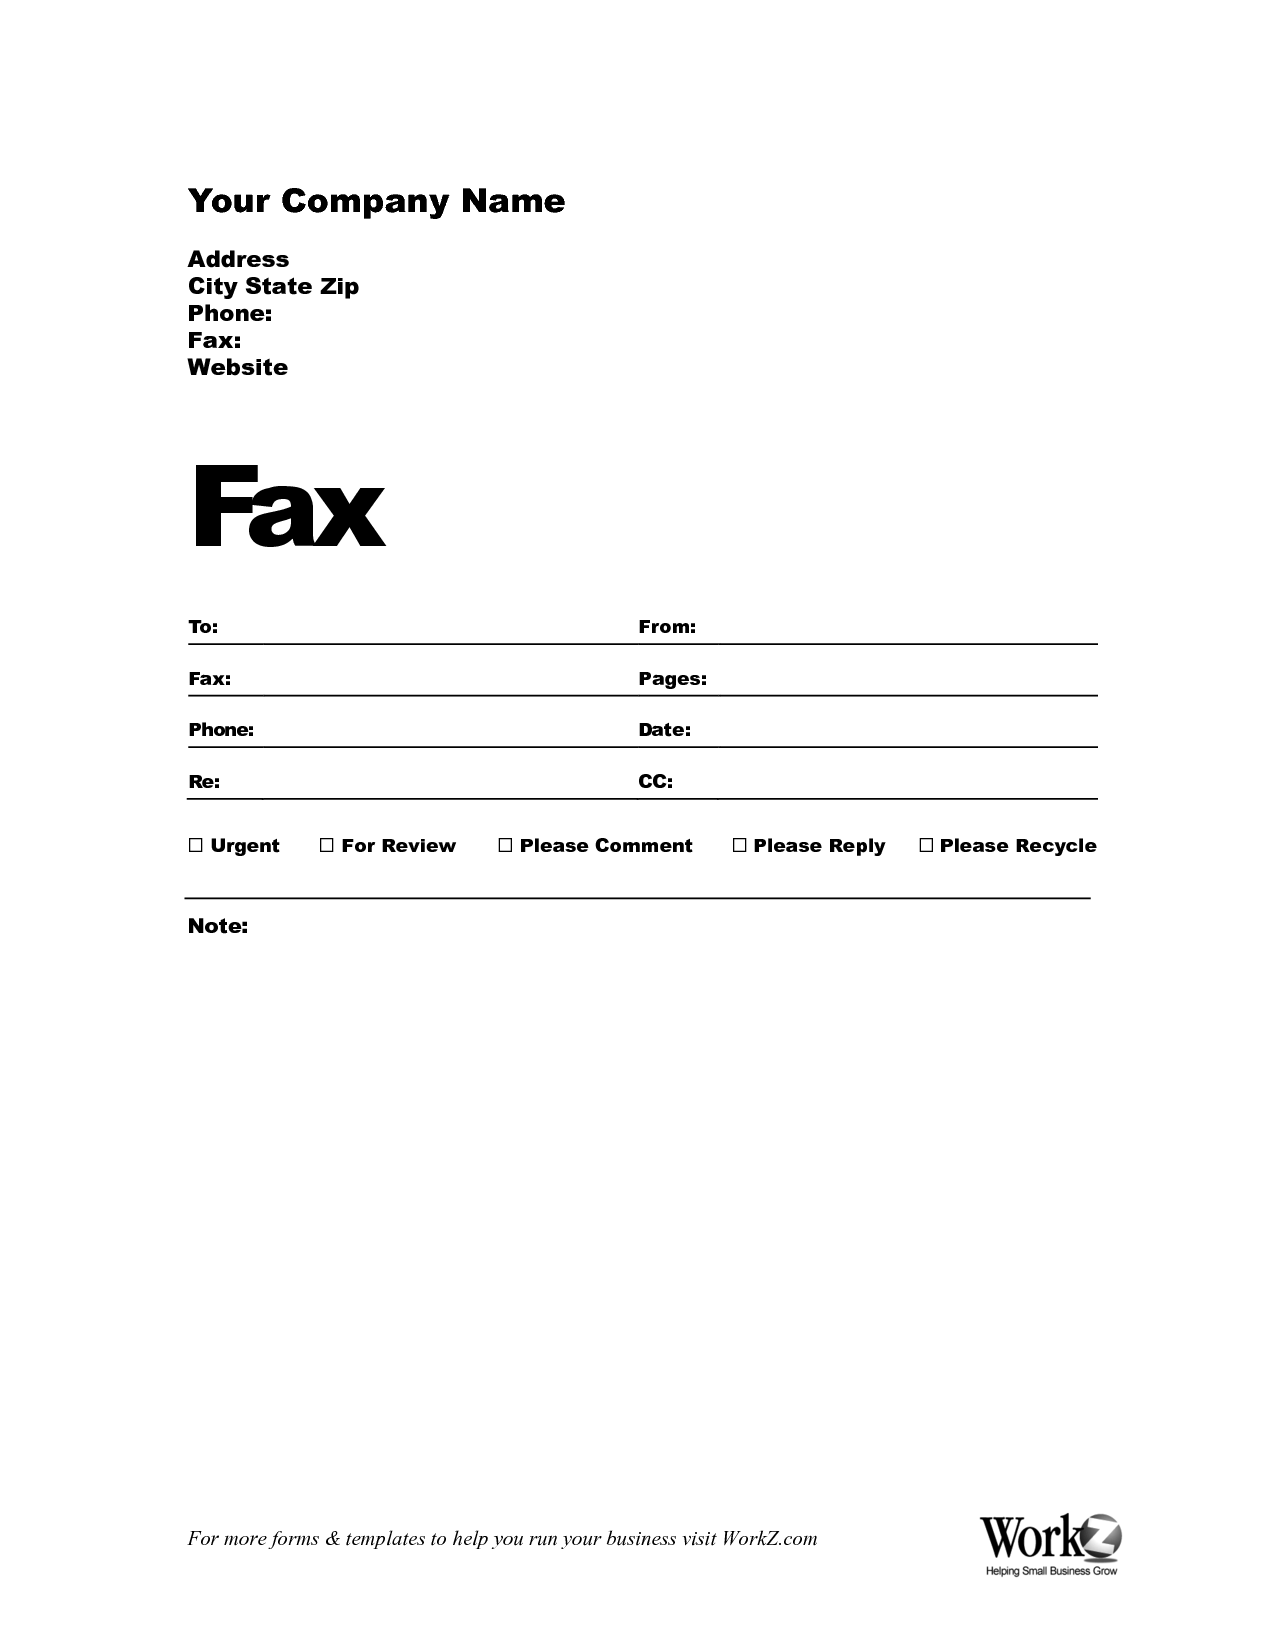 fax cover sheet doc - Fax Cover Letter Examples